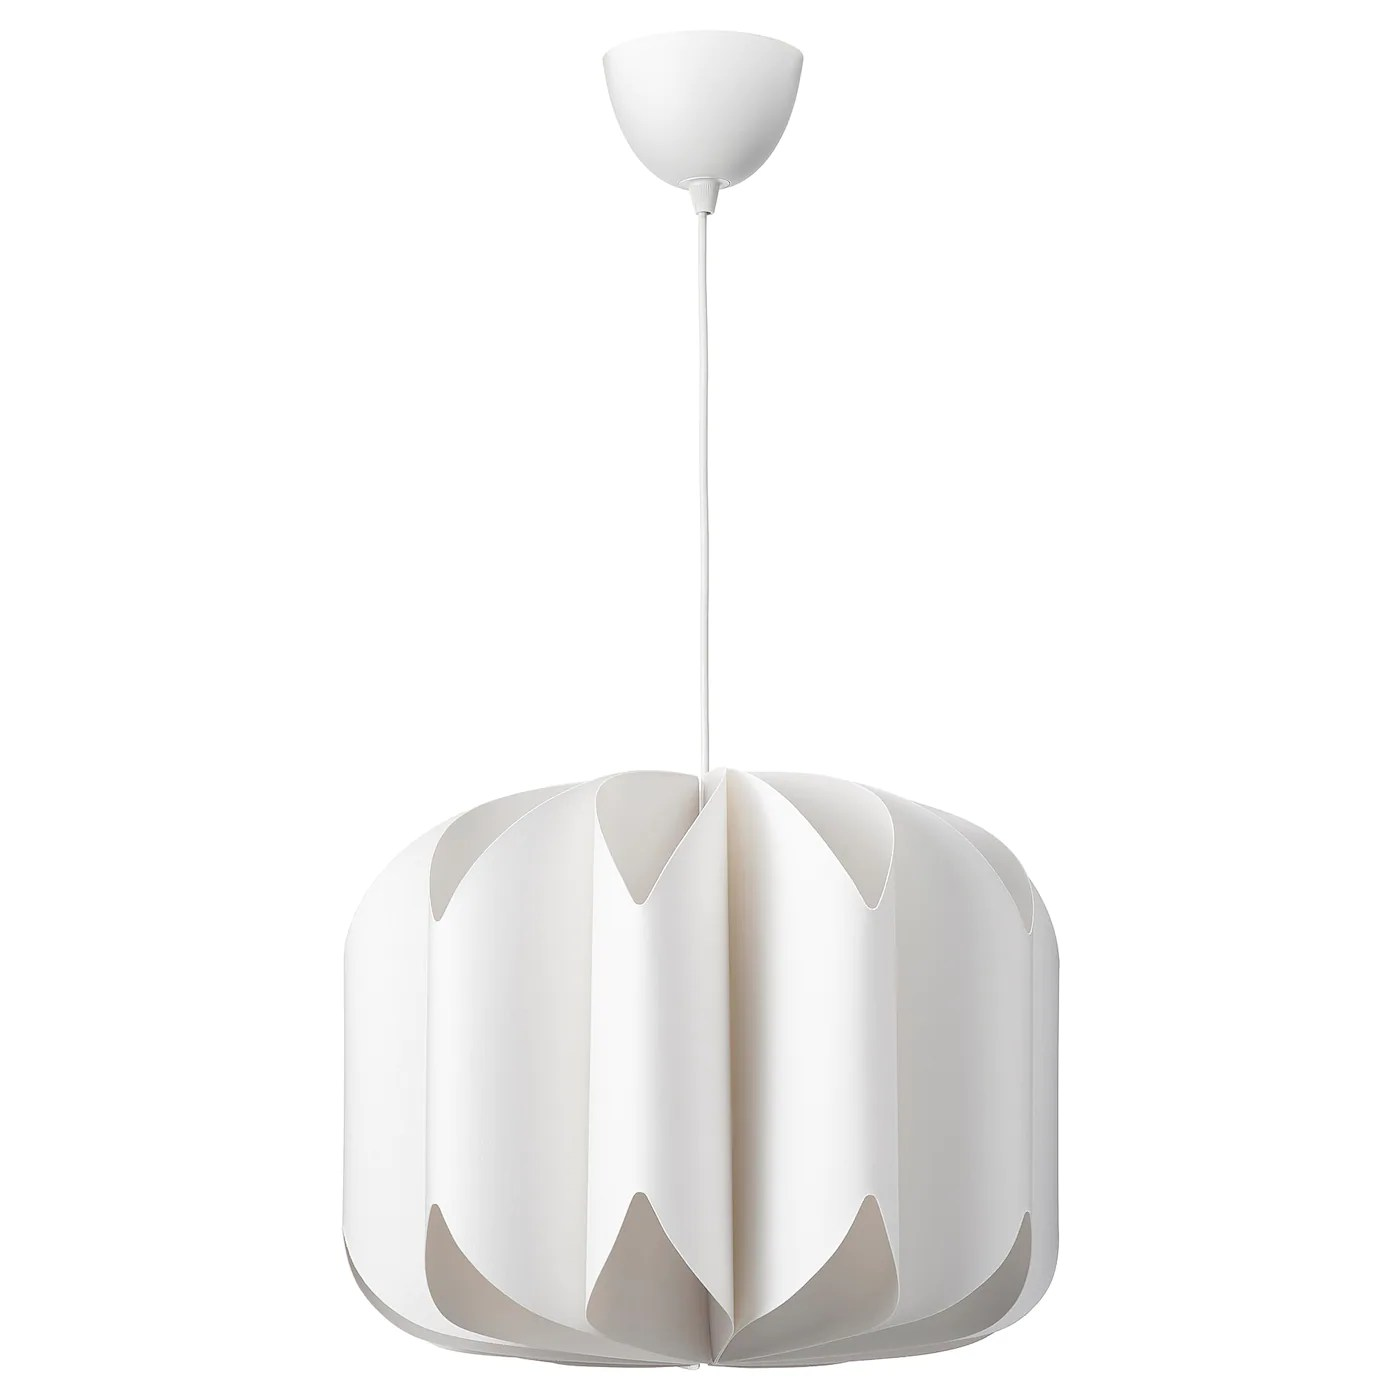 If you are looking for modern, affordable furniture to furnish your apartment or first home, ikea may be a good match. Mojna Paralume Per Lampada A Sospensione Tessuto Bianco 47 Cm Ikea It